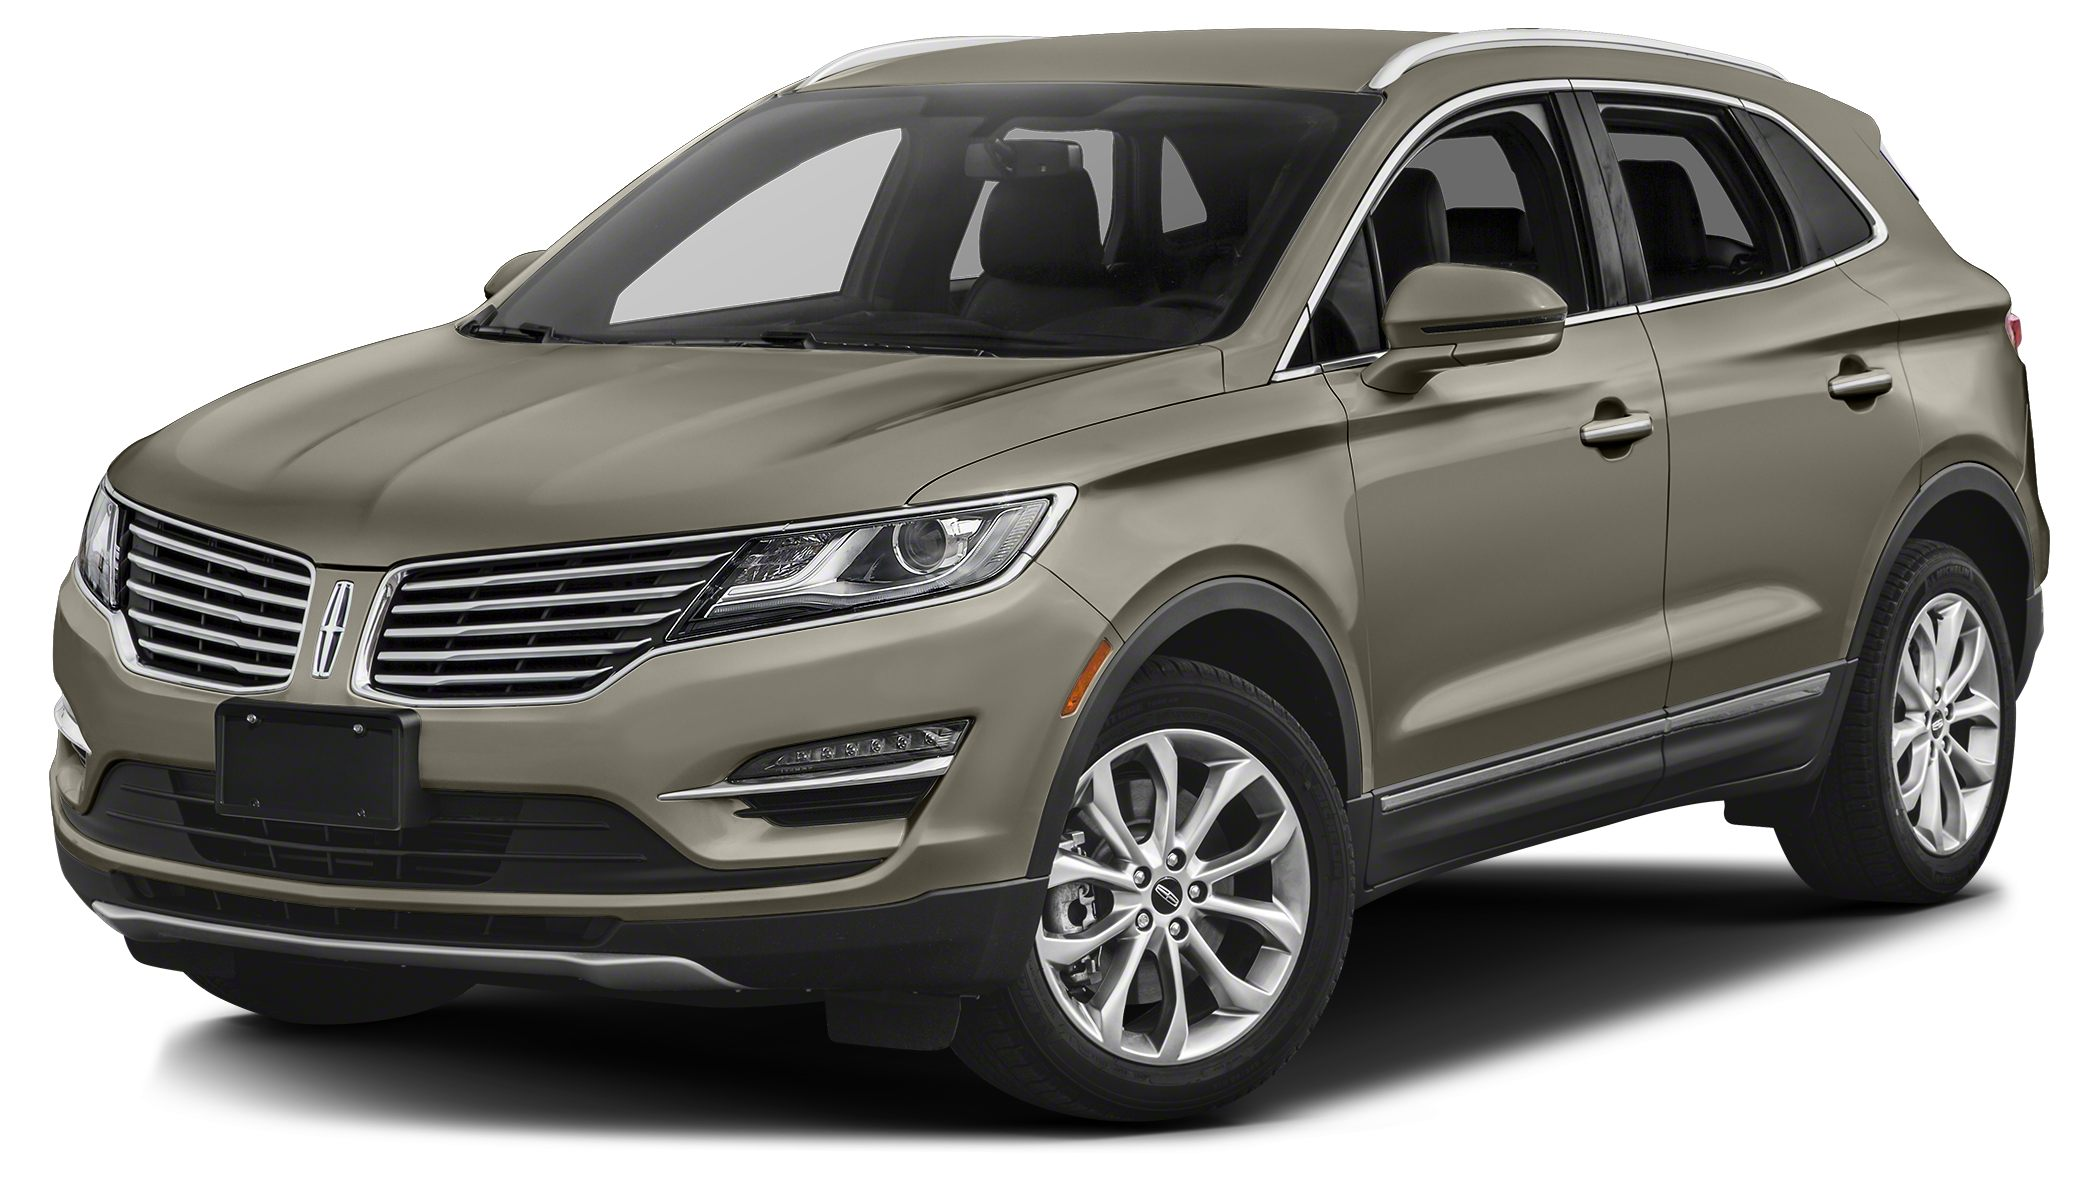 2016 Lincoln MKC Select The new Lincoln MKC blends the best traits of a sport crossover with the r